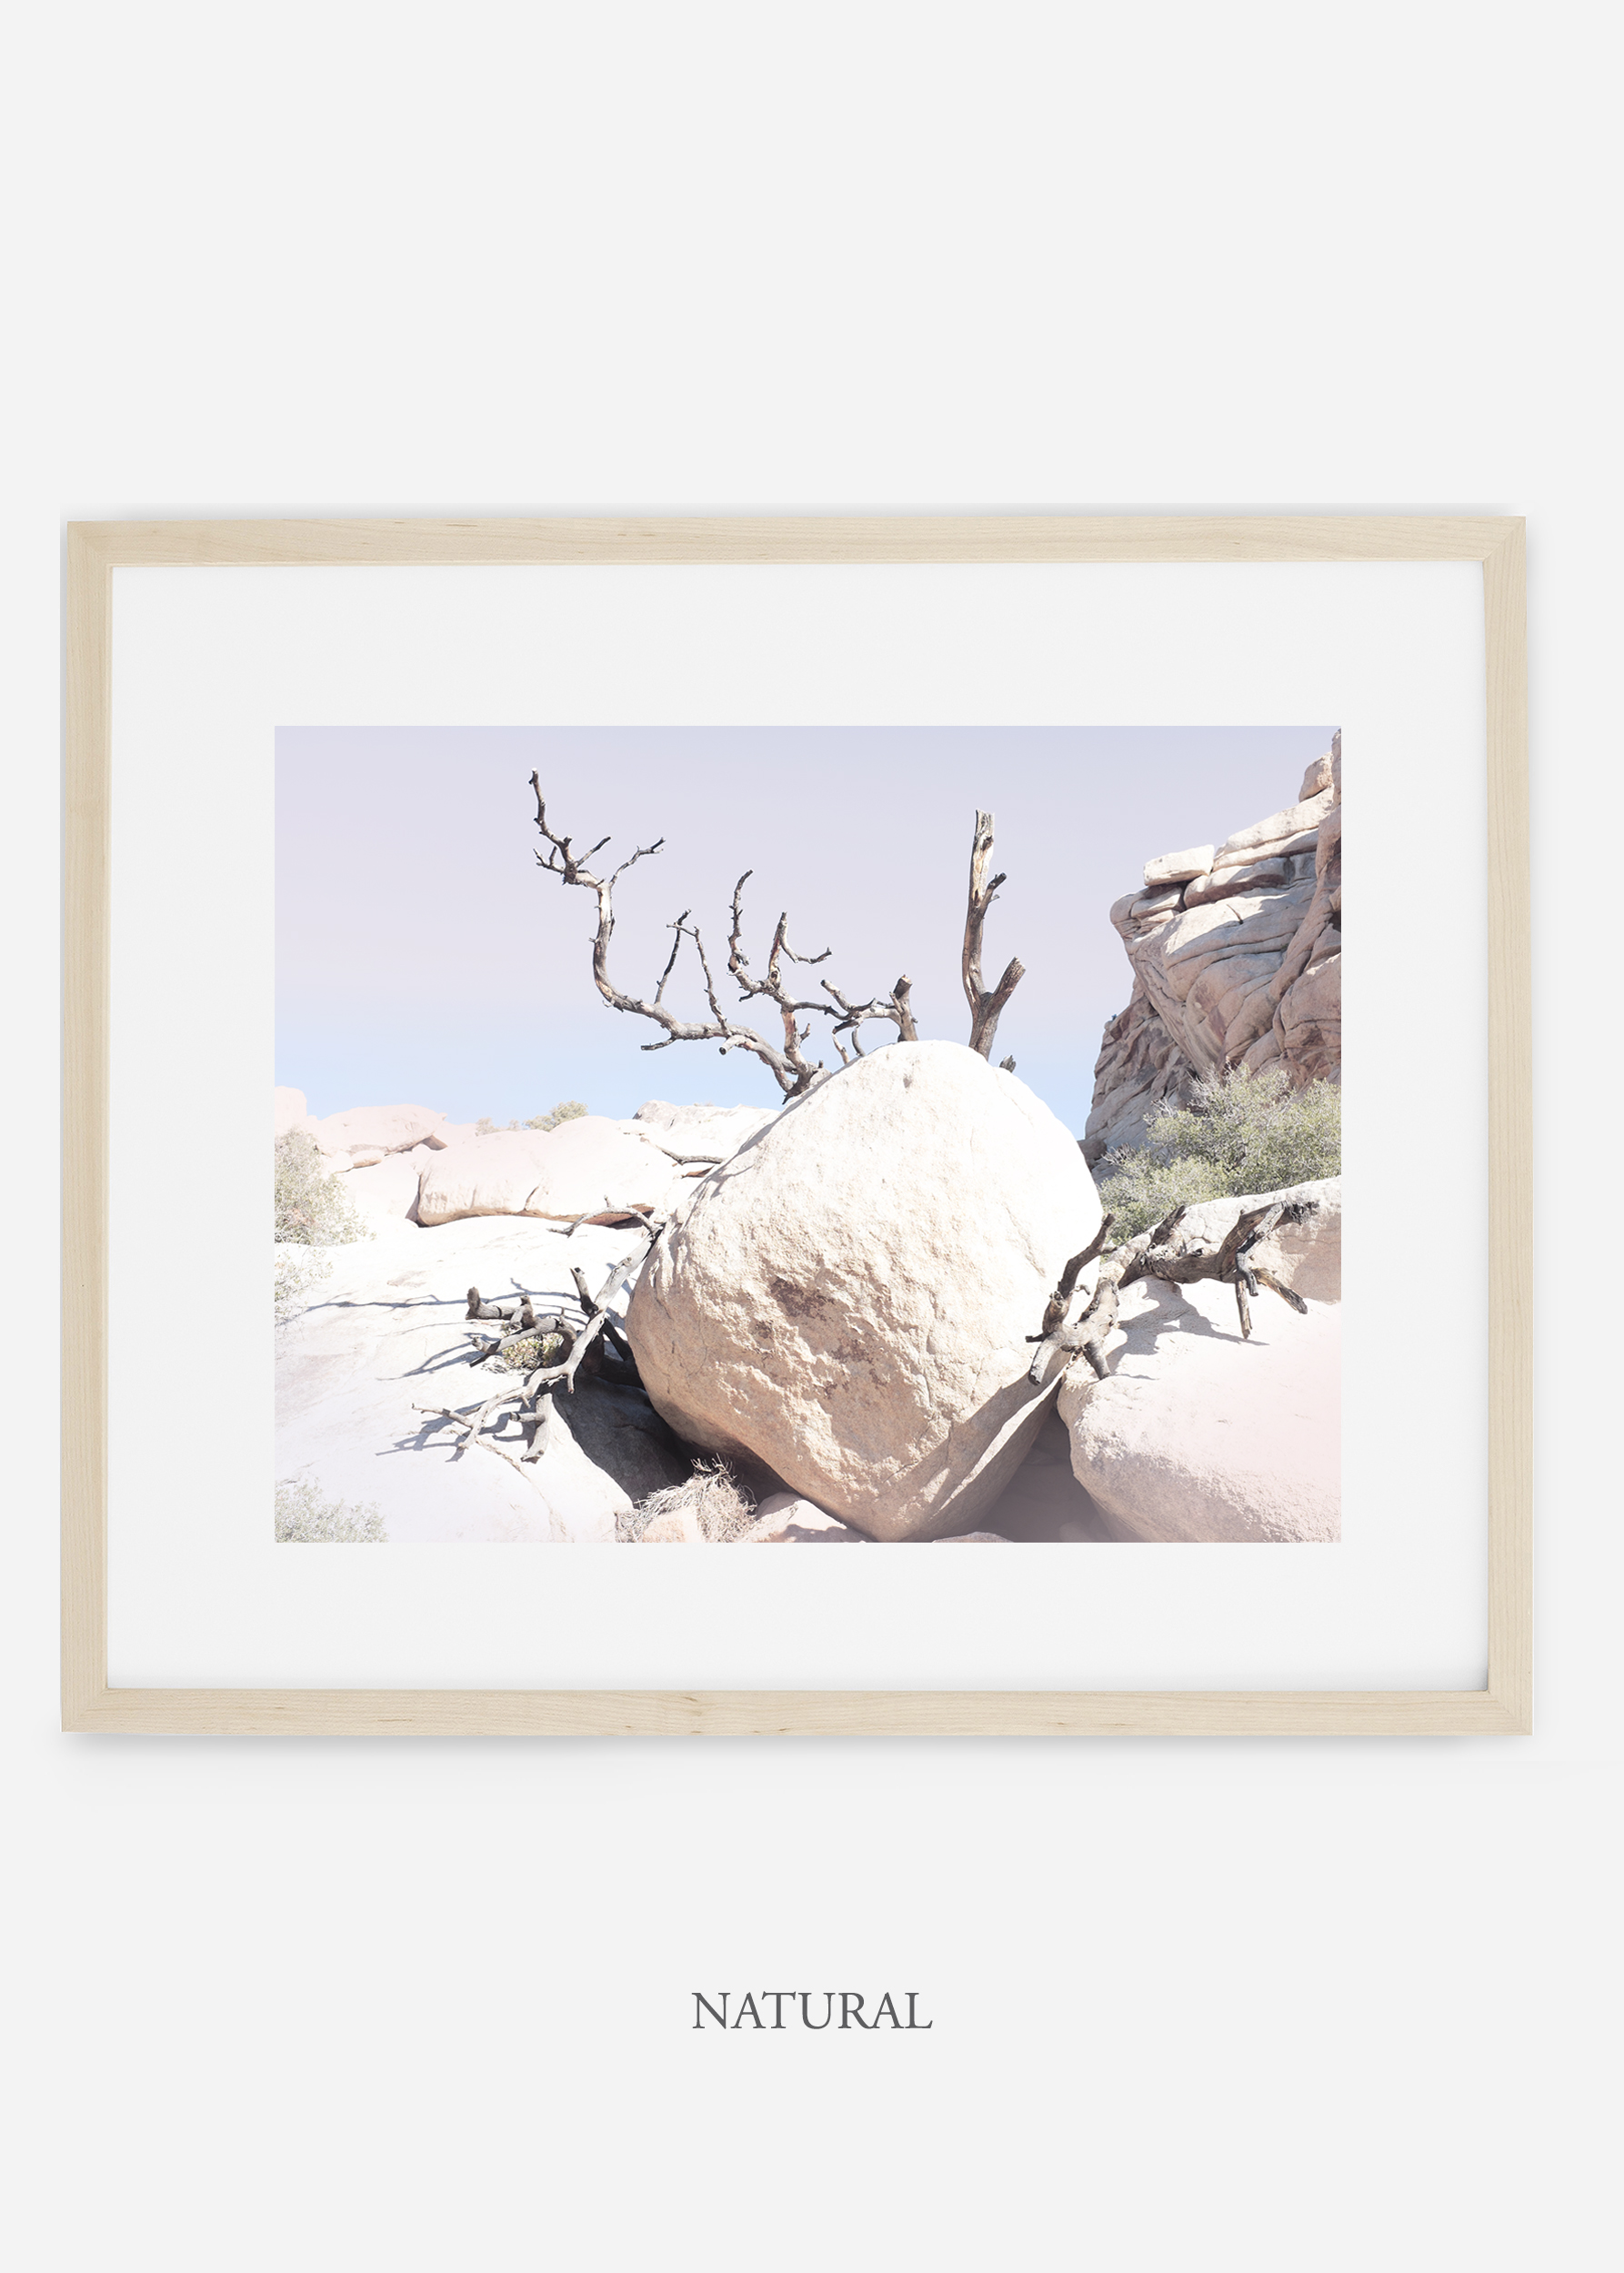 WilderCalifornia_natural_JoshuaTree_No.17_interiordesign_prints_art.jpg